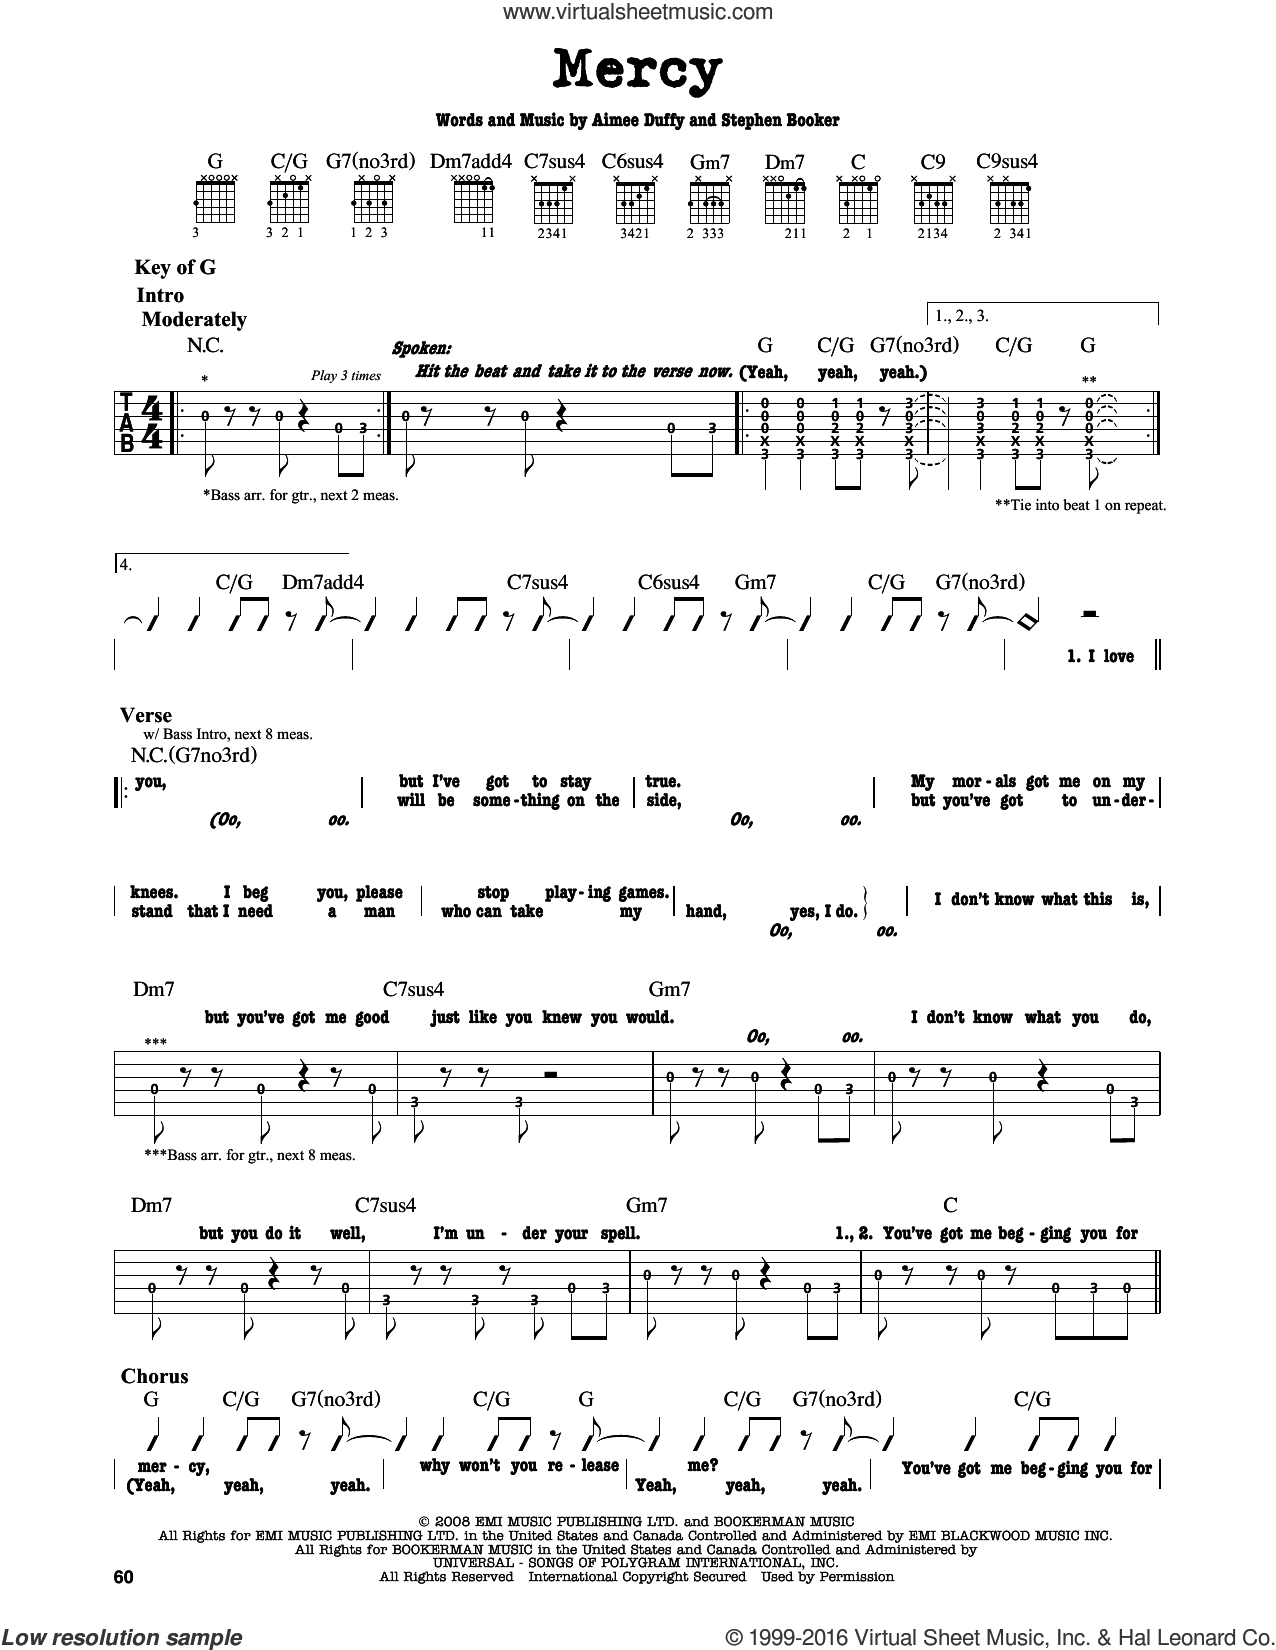 Mercy sheet music for guitar solo (lead sheet) by Duffy, Aimee Duffy and Steve Booker, intermediate guitar (lead sheet)